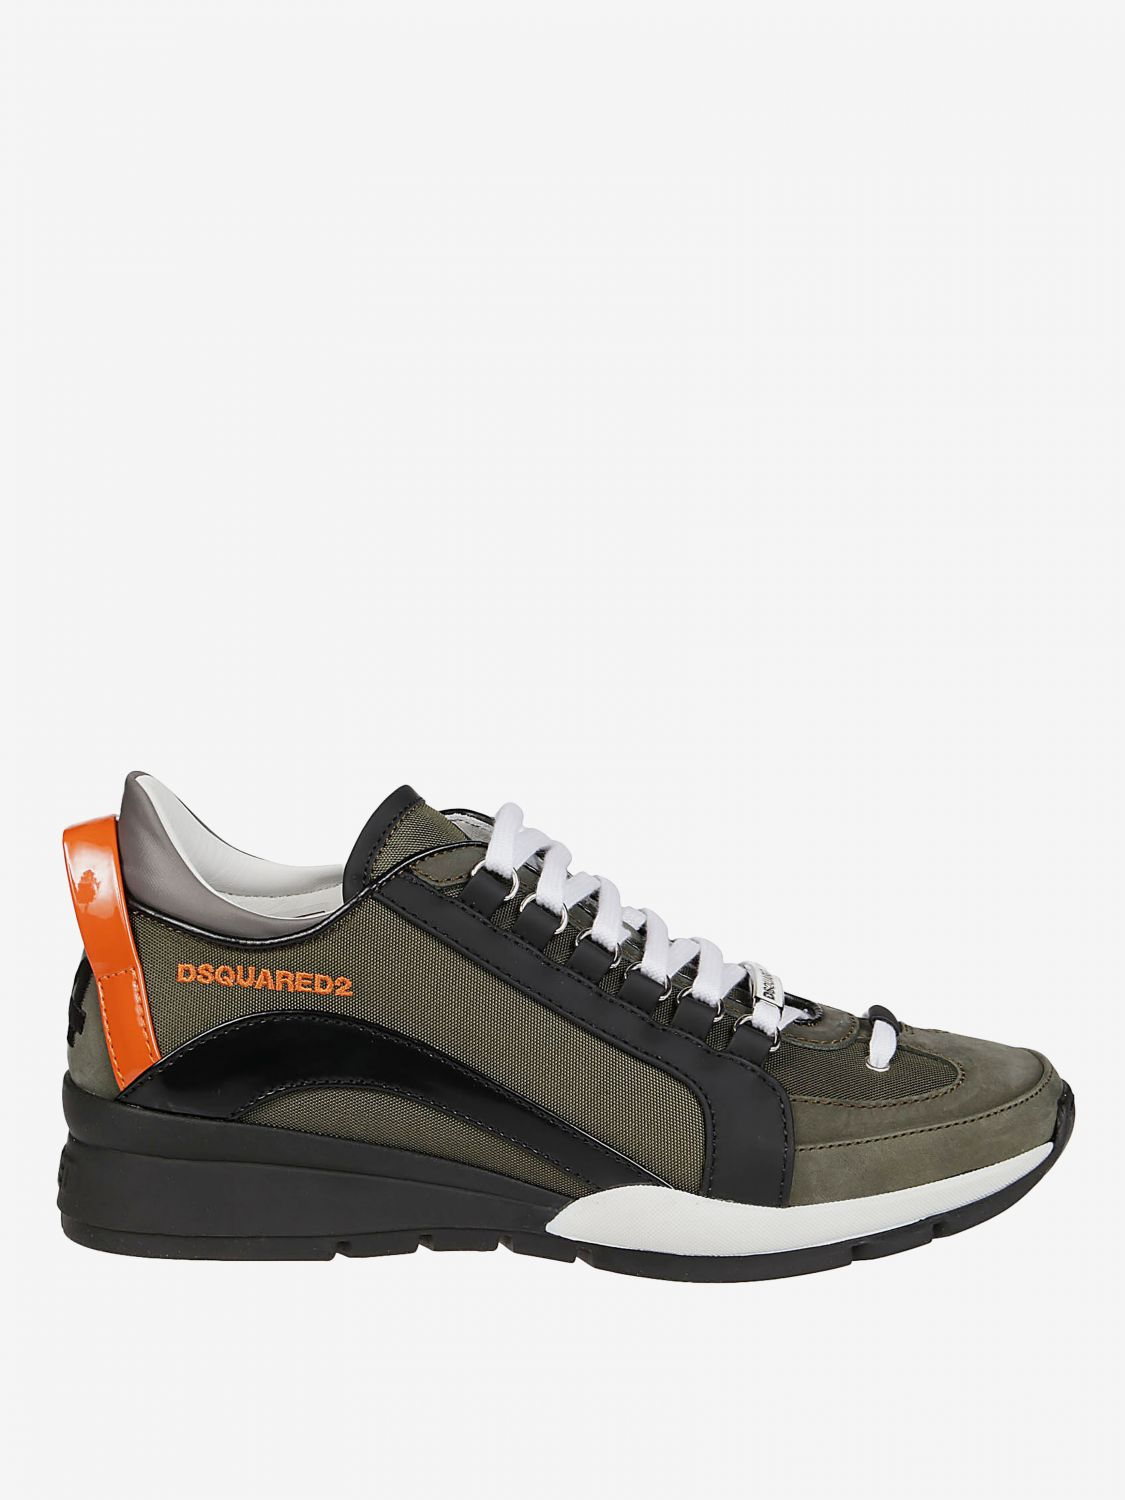 Sneakers Dsquared2 en cuir avec micro trous | Baskets